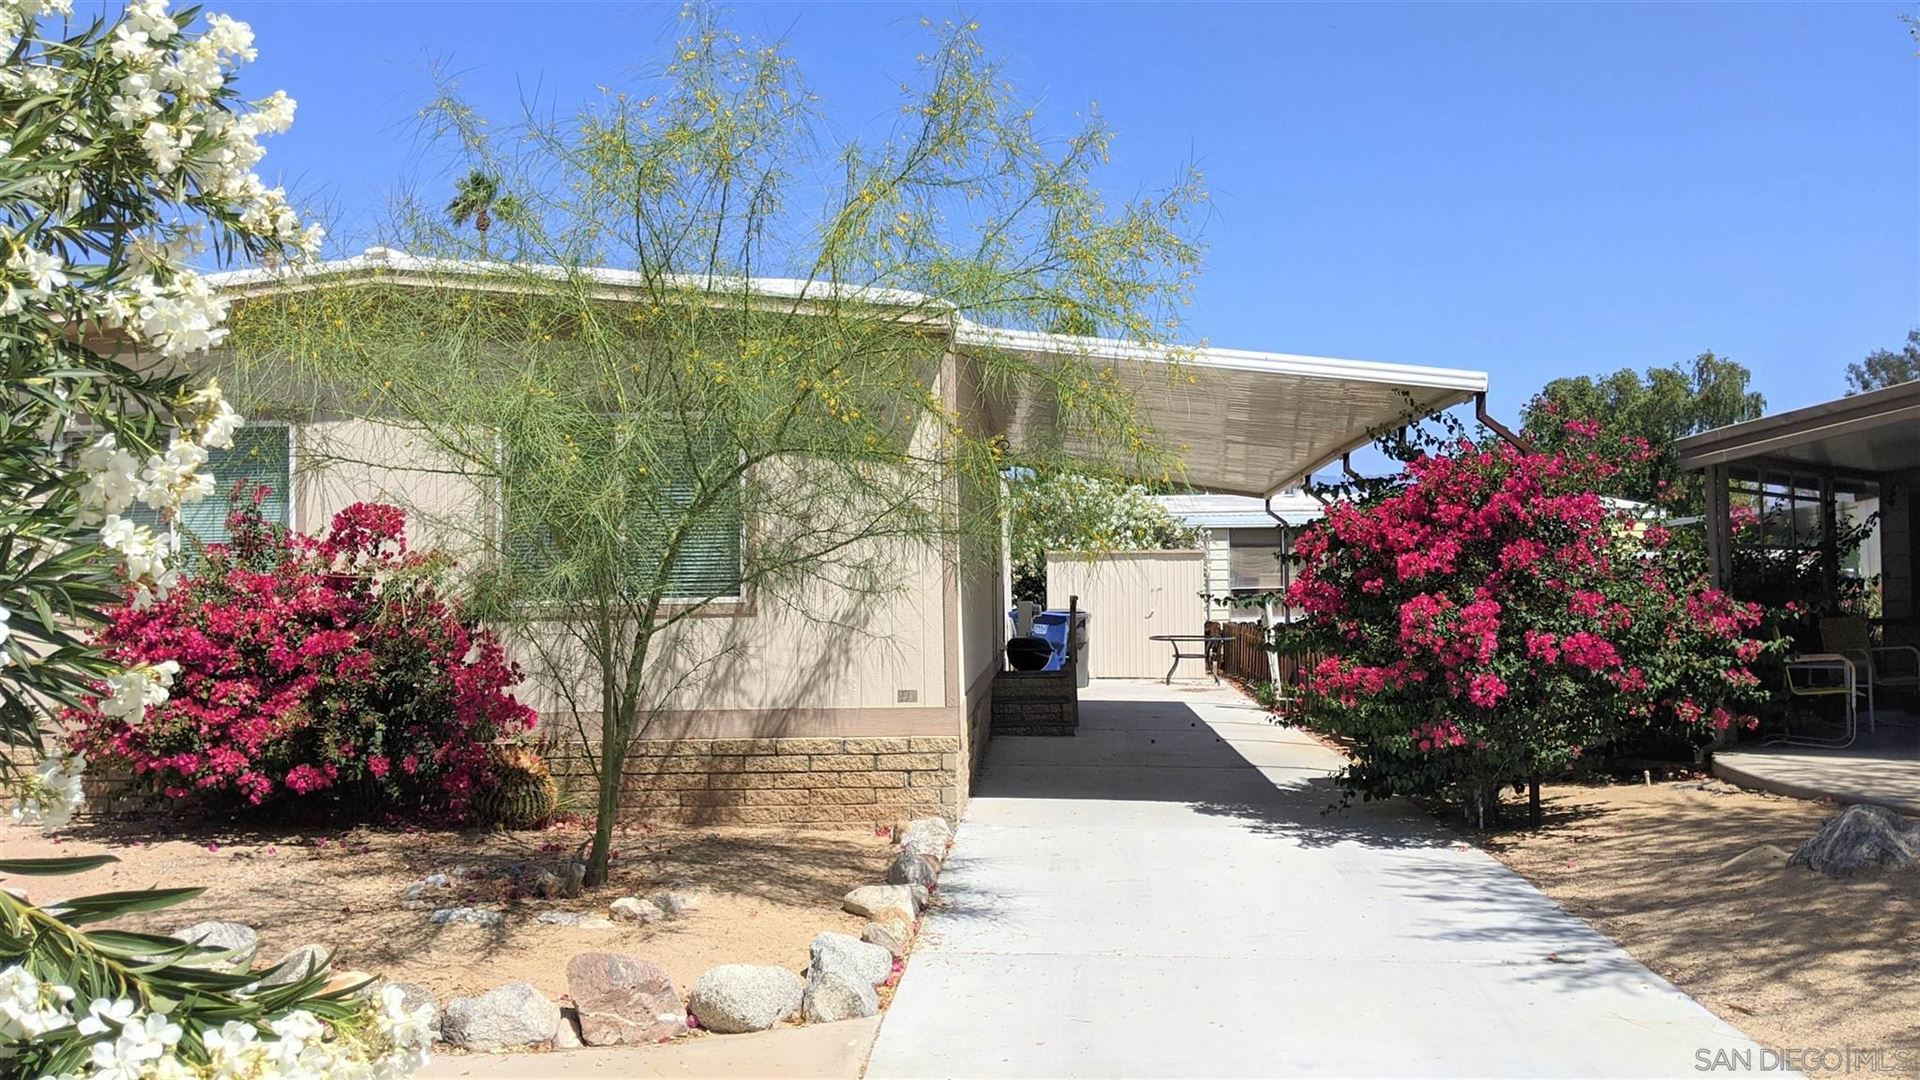 Photo of 1010 Palm Canyon Dr #37, Borrego Springs, CA 92004 (MLS # 210014907)